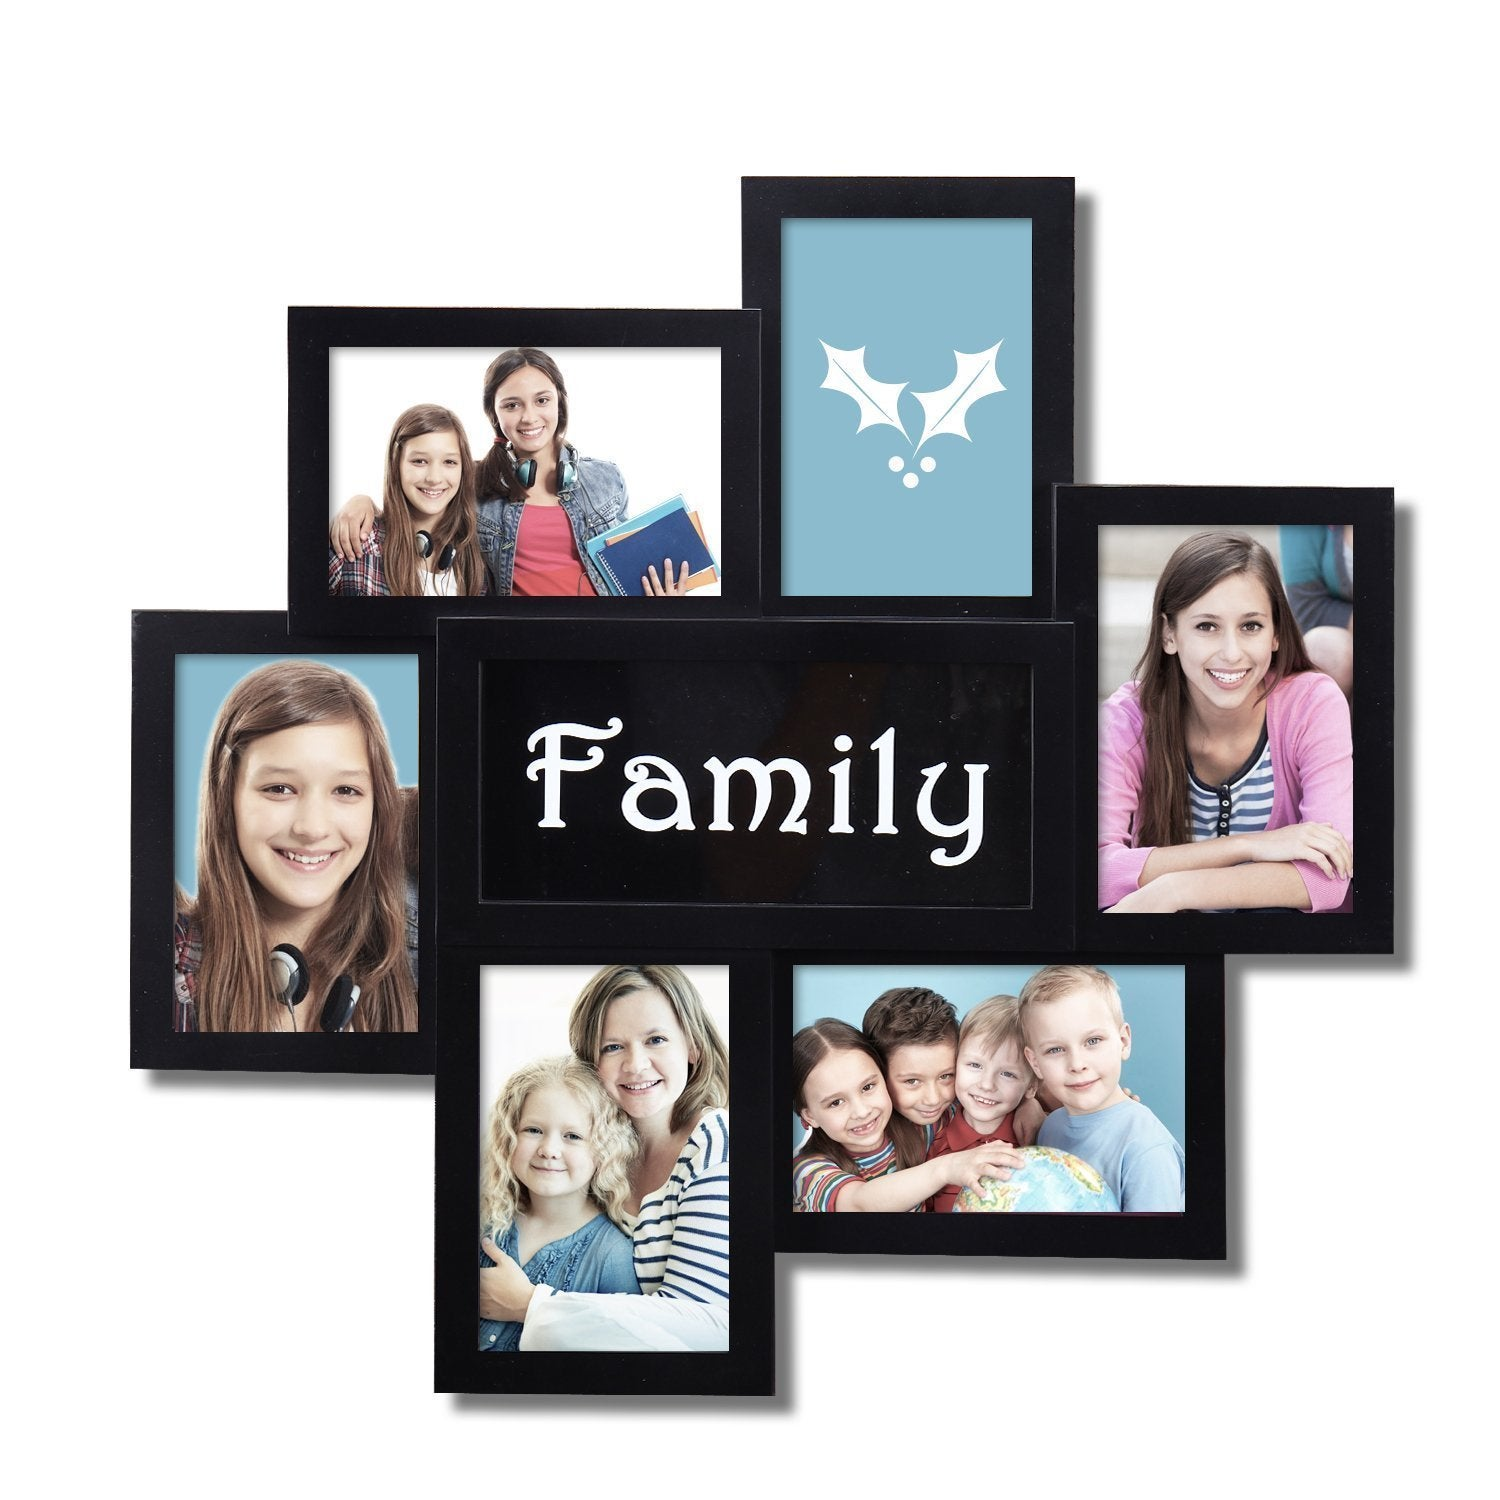 Adeco \'Family\' 6-opening Black Plastic Wall Hanging Collage Photo ...